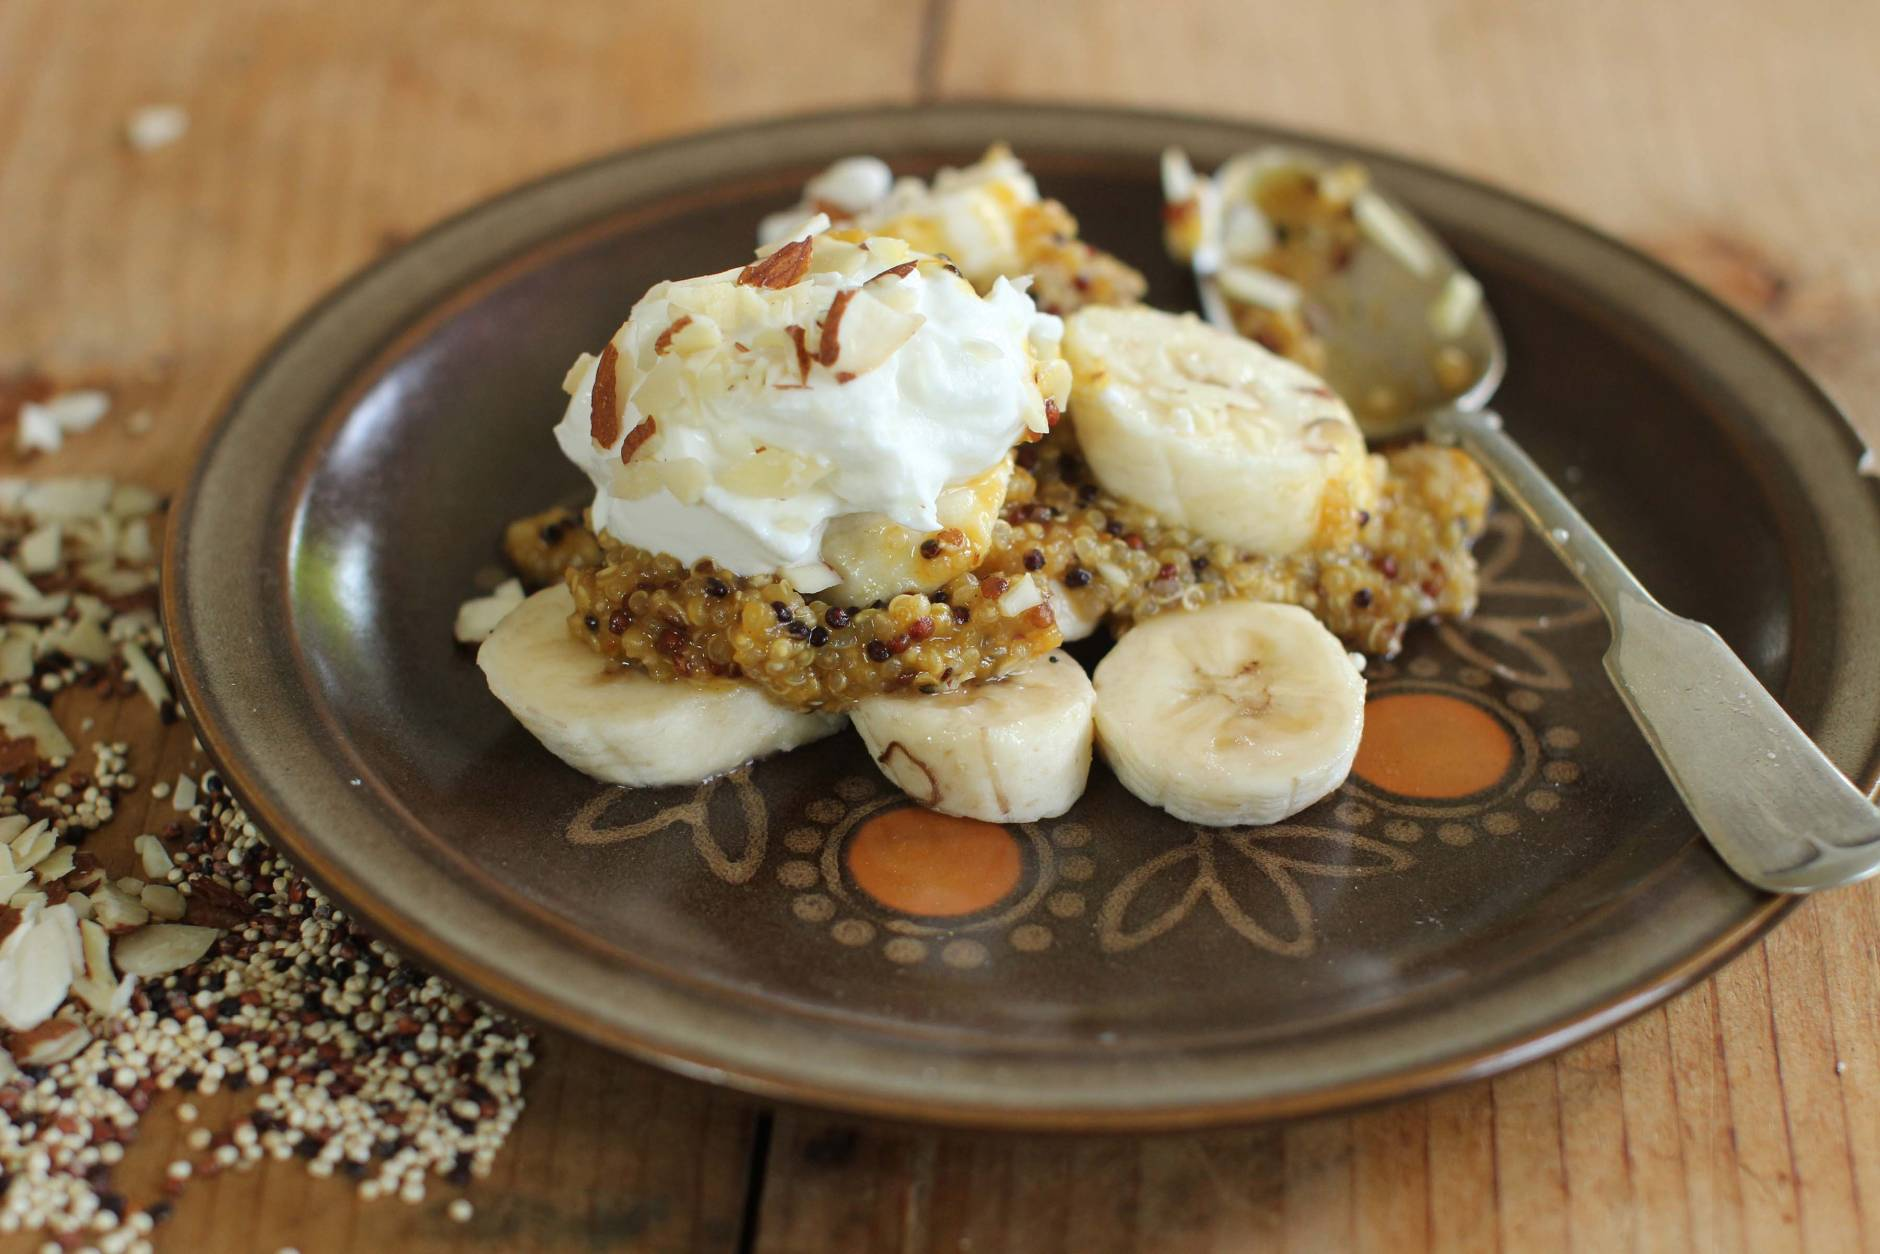 This Sept. 21, 2015, photo shows quinoa pumpkin breakfast bowl in Concord, N.H. (AP Photo/Matthew Mead)